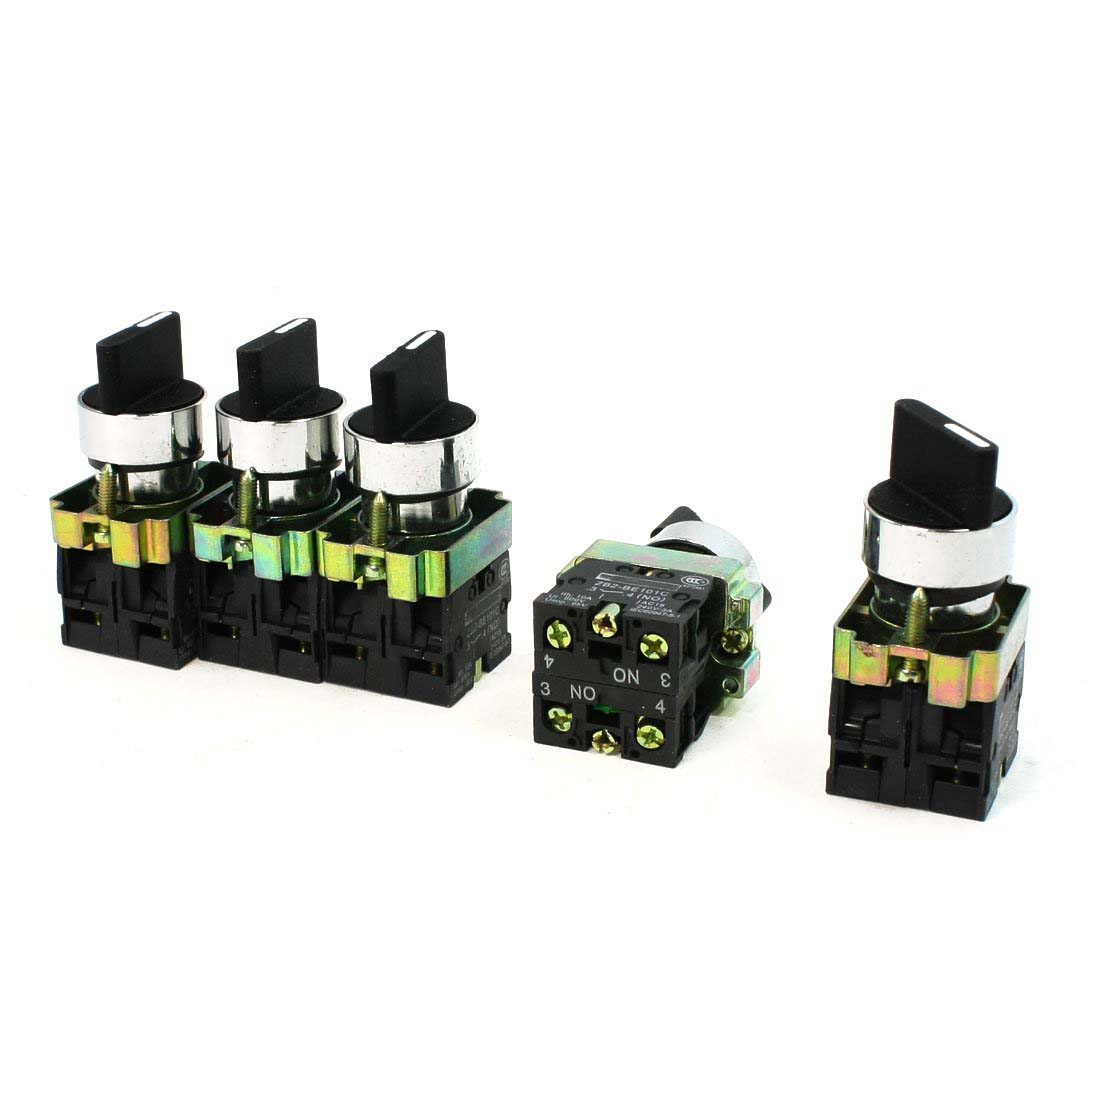 10A Ith 600V Ui Lug Control 4 Terminal 3 Position DPST 2NO Rotary Switch 5Pcs ui 660v ith 25a 12 terminals 3 positions latching rotary changeover cam switch